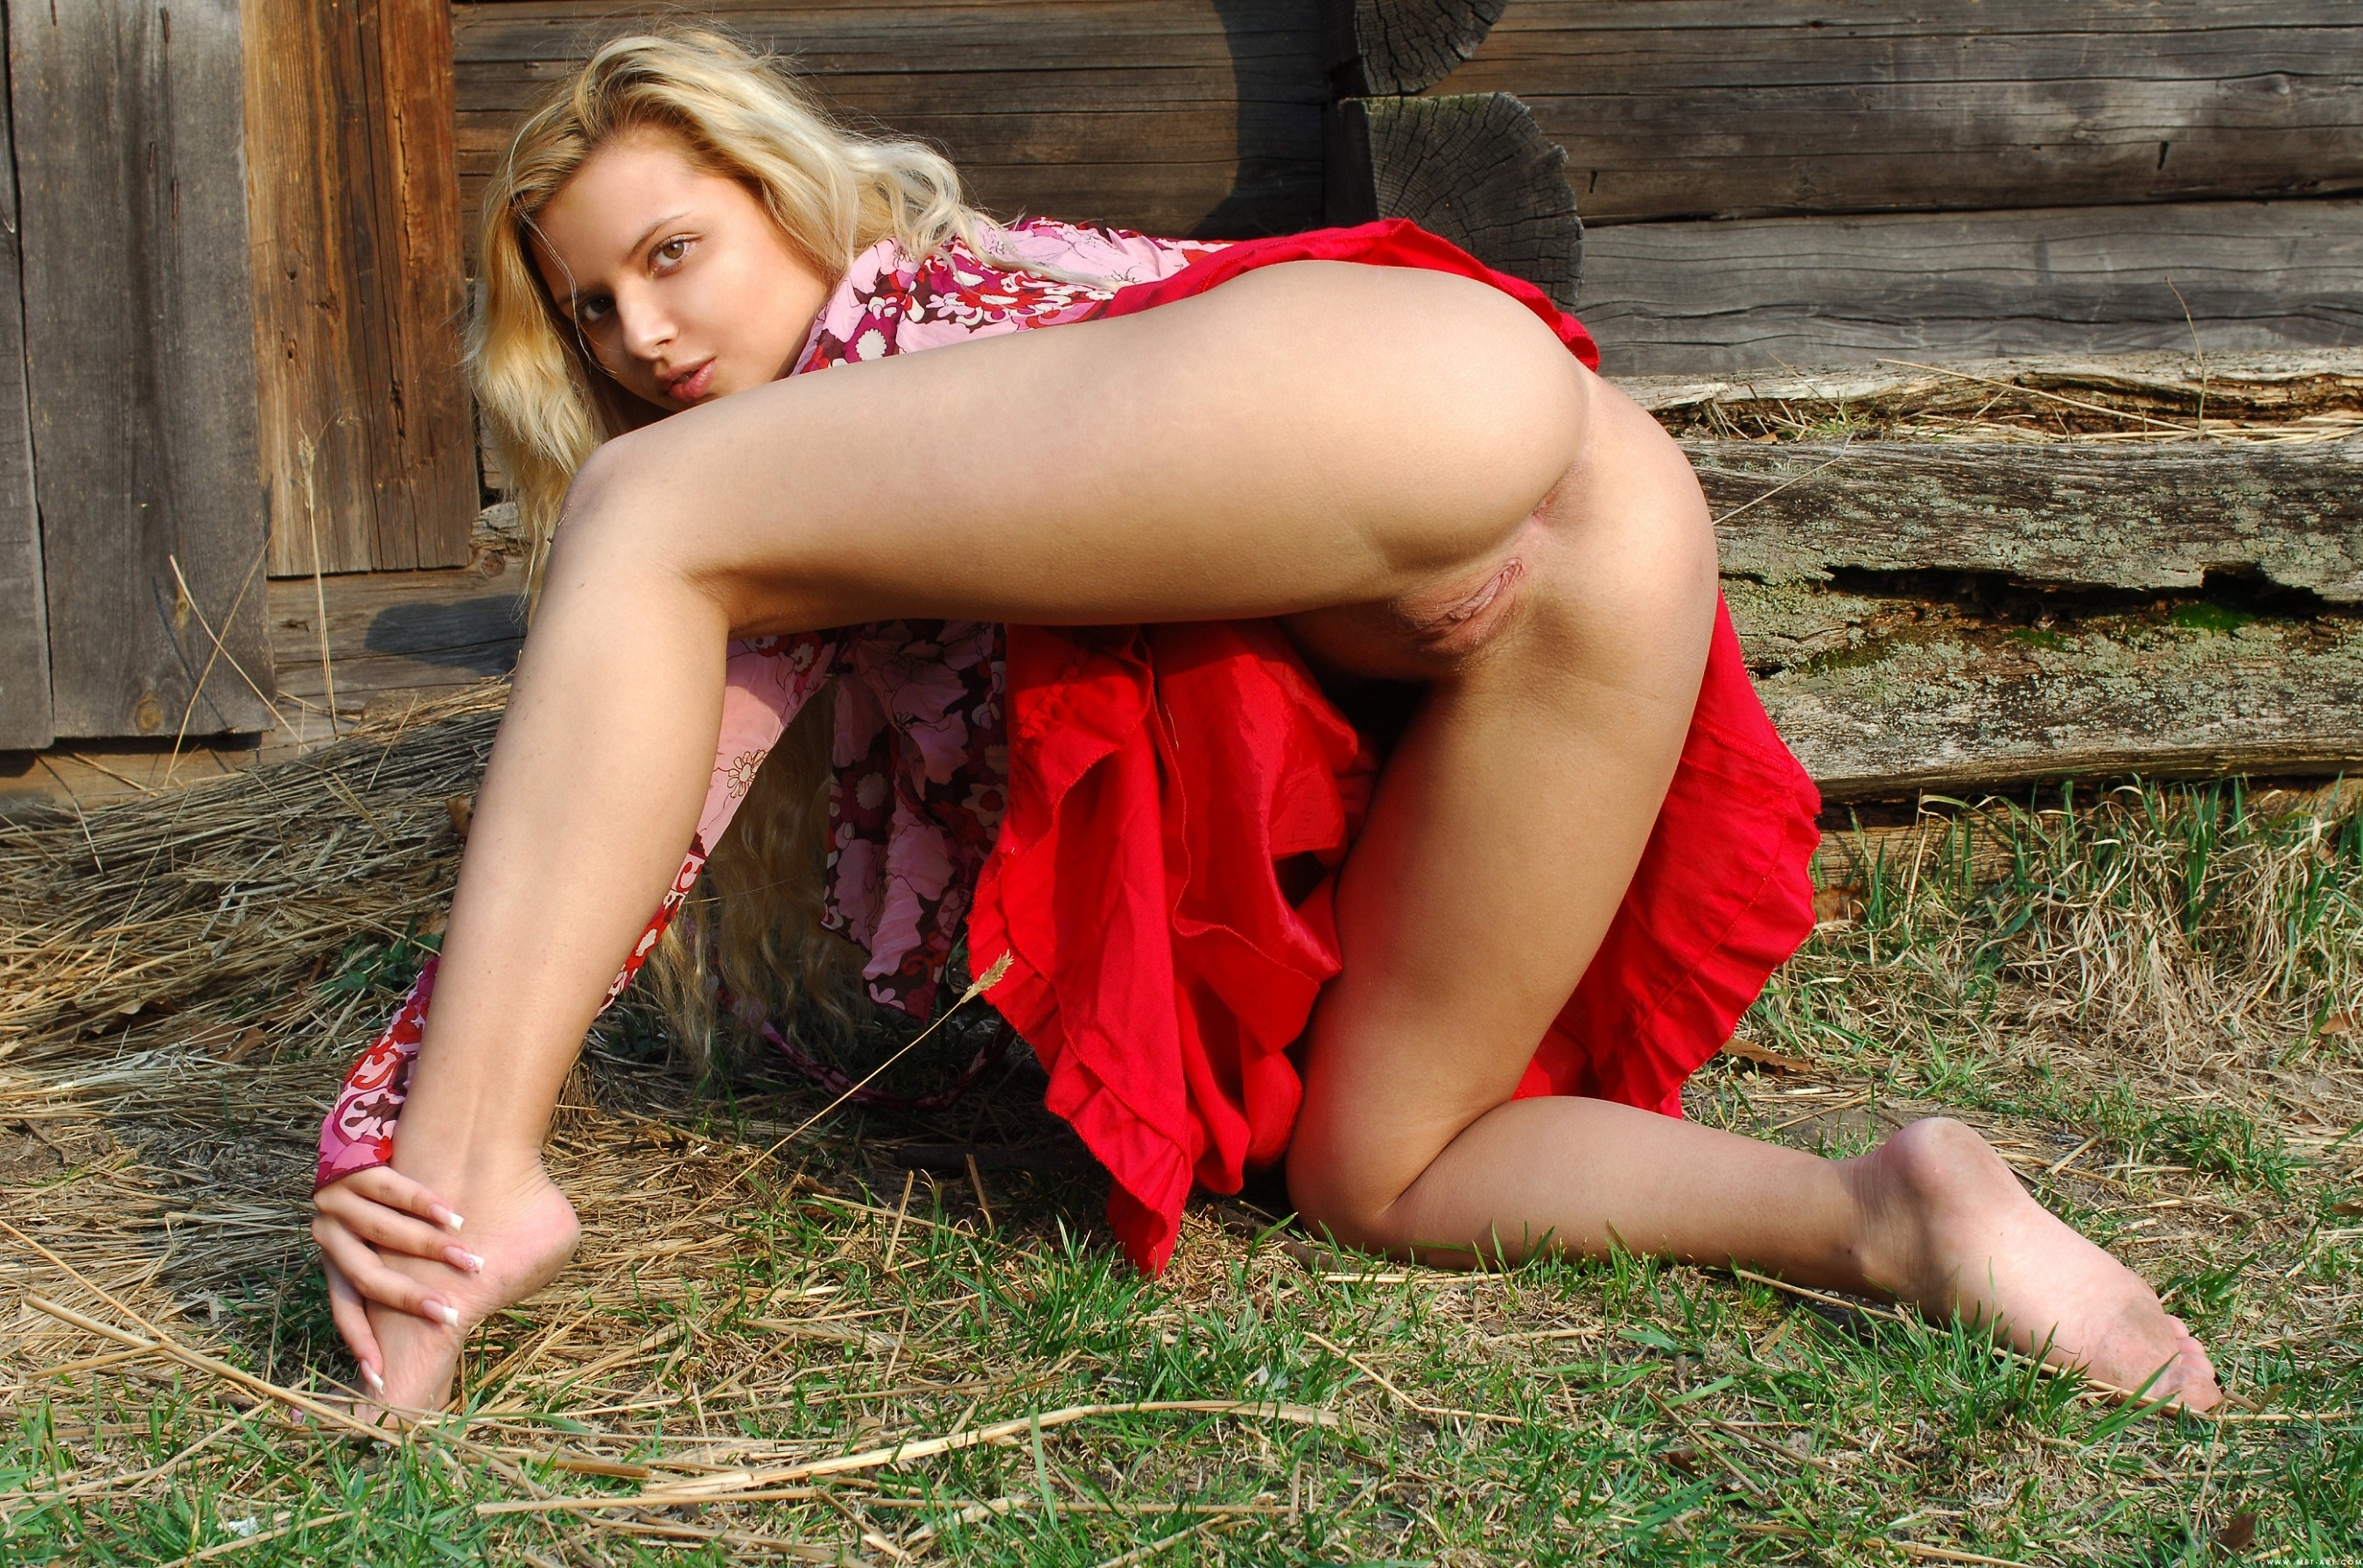 Wallpaper Angelini A, Blonde, Pussy, Hot, Spread Legs -9376